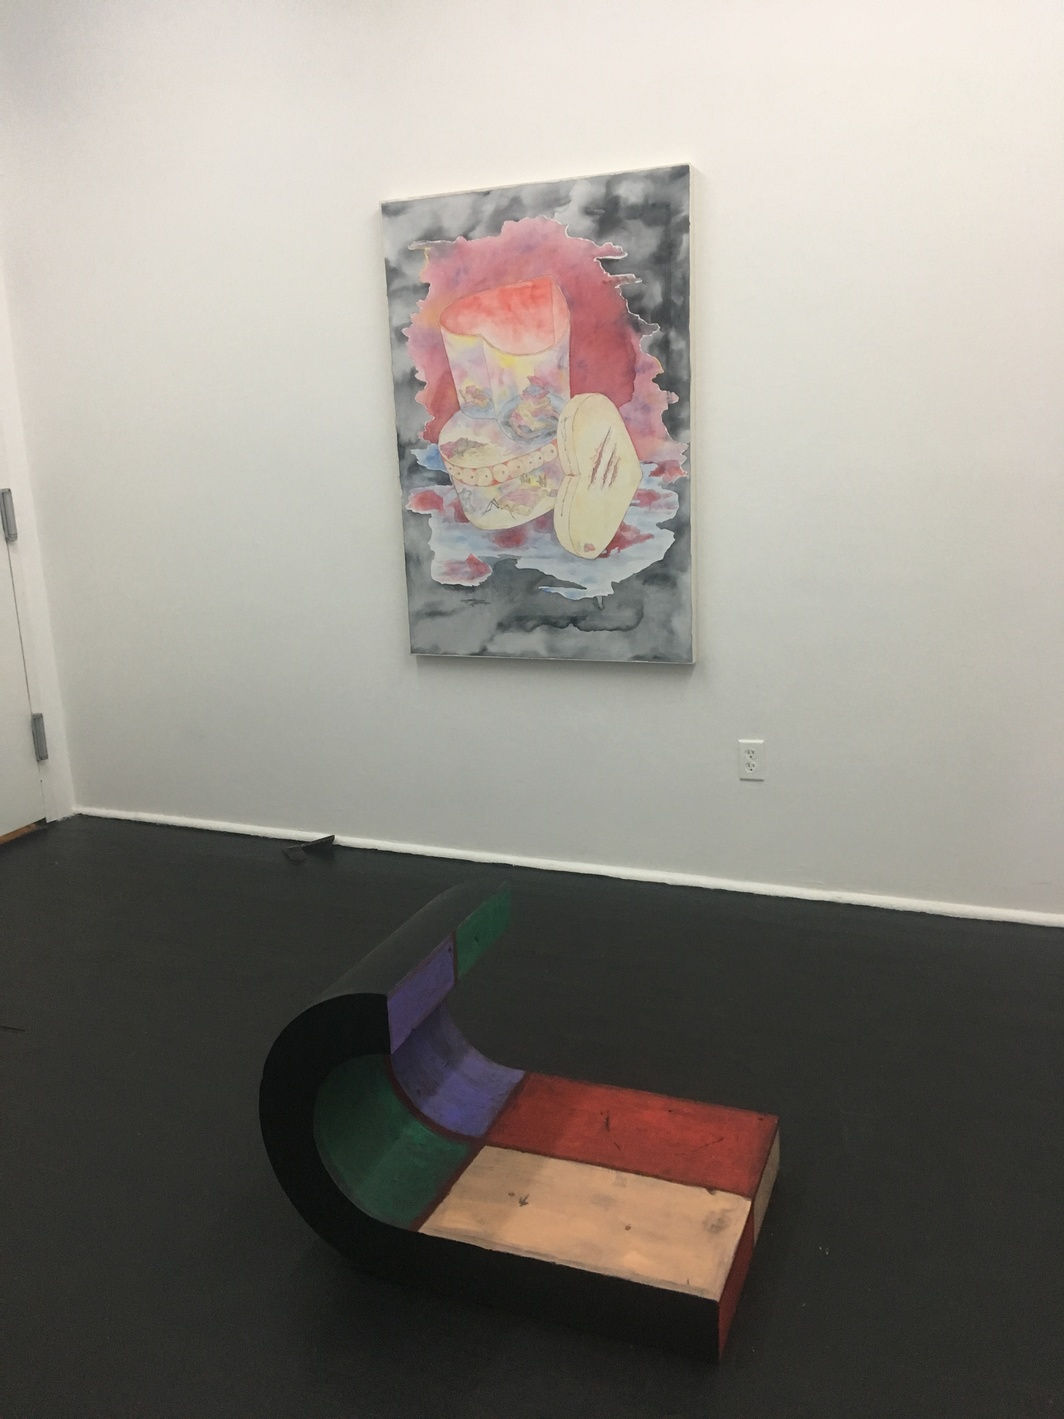 Works by Sofia Duchovny and Matthew Langan Peck at Queer Thoughts.